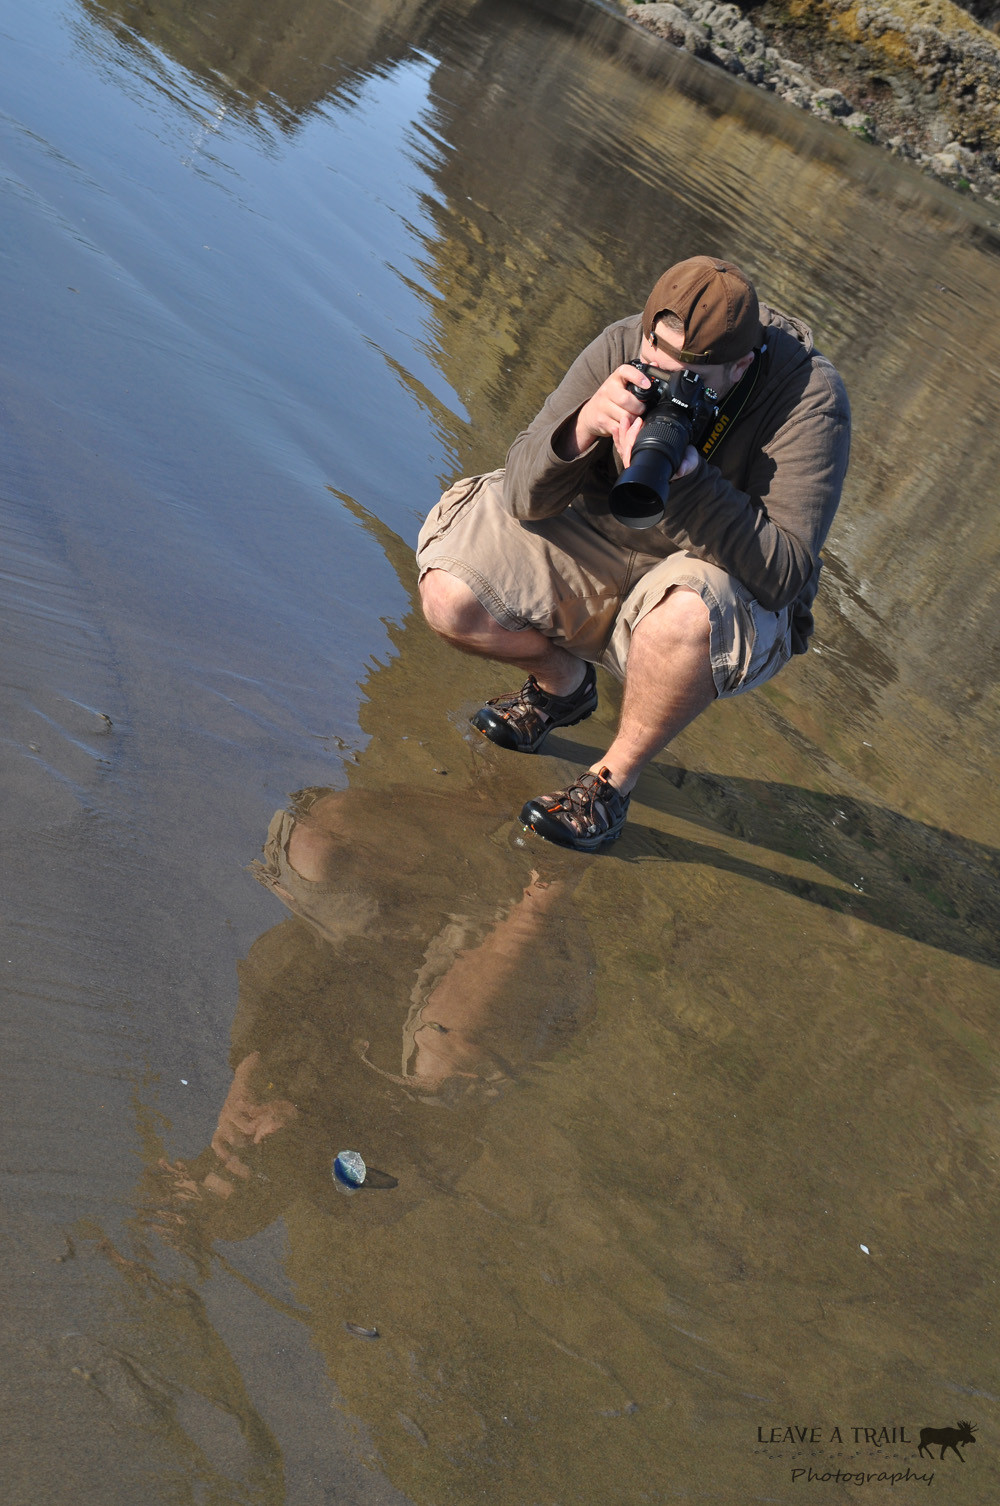 Mike Taking a Shot of the Washed Up Sea Life